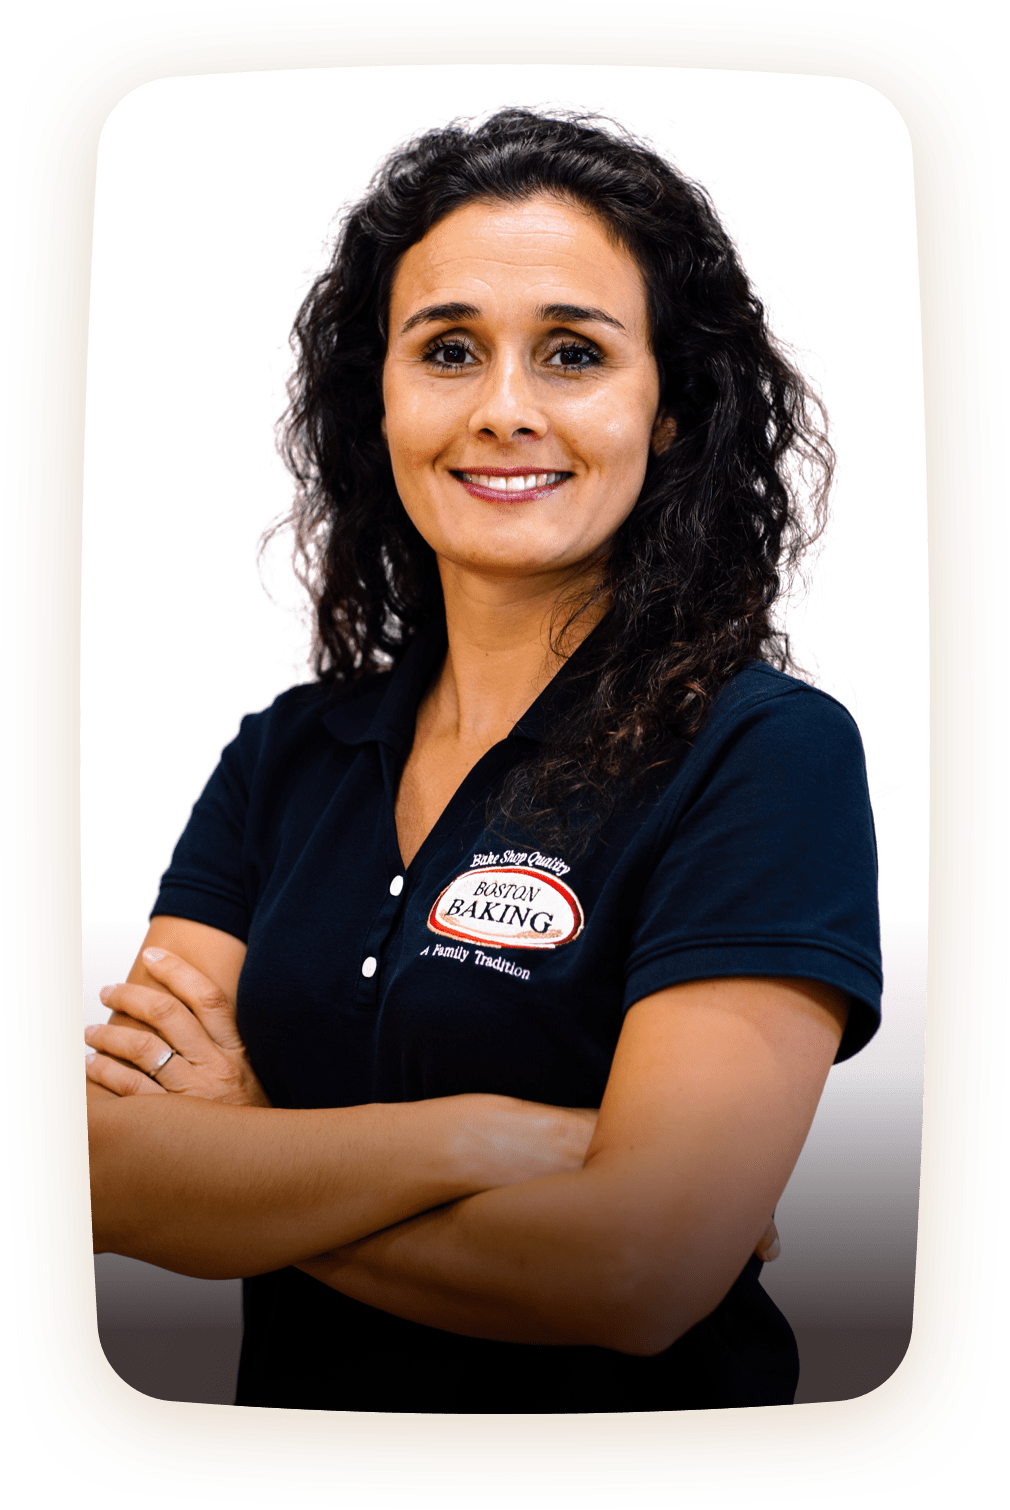 Virginia M. Fraga, Operational Excellence Manager